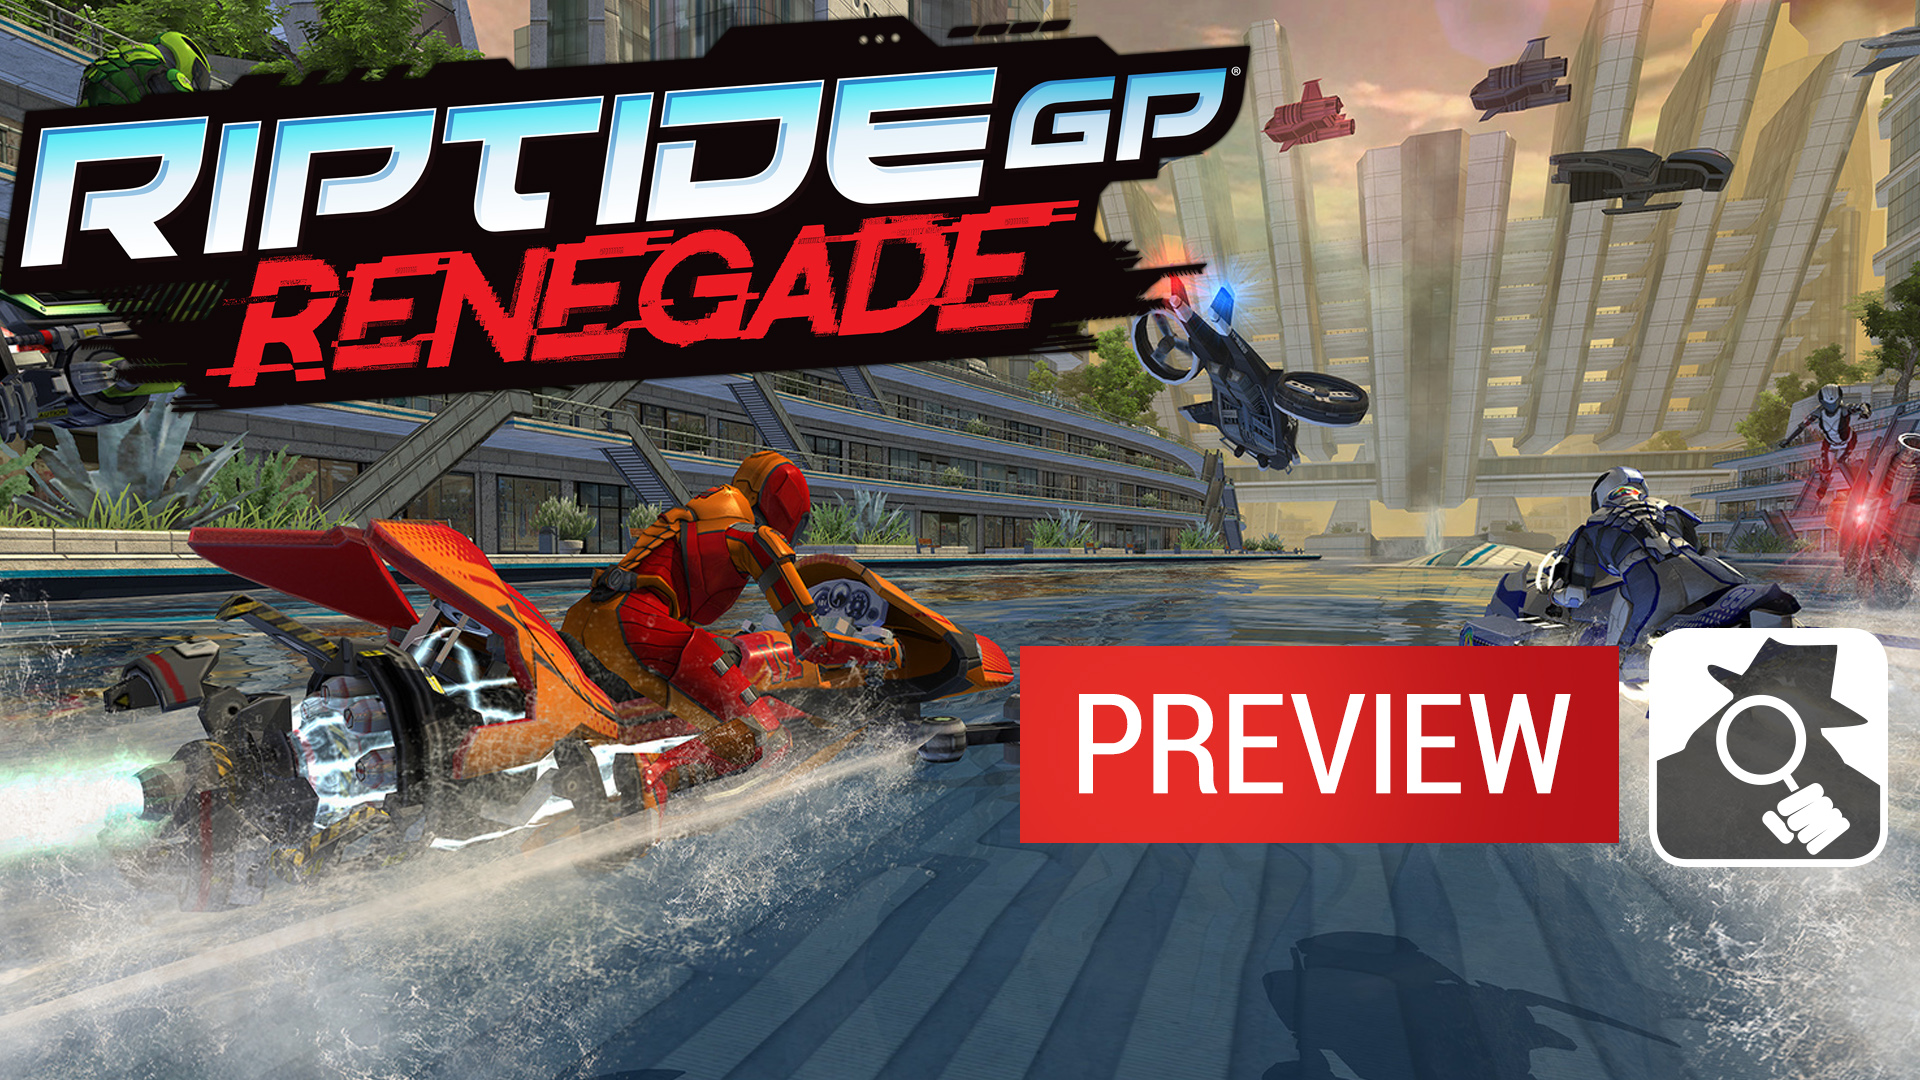 RIPTIDE GP: RENEGADE is face-clawingly gorgeous and headed to mobile